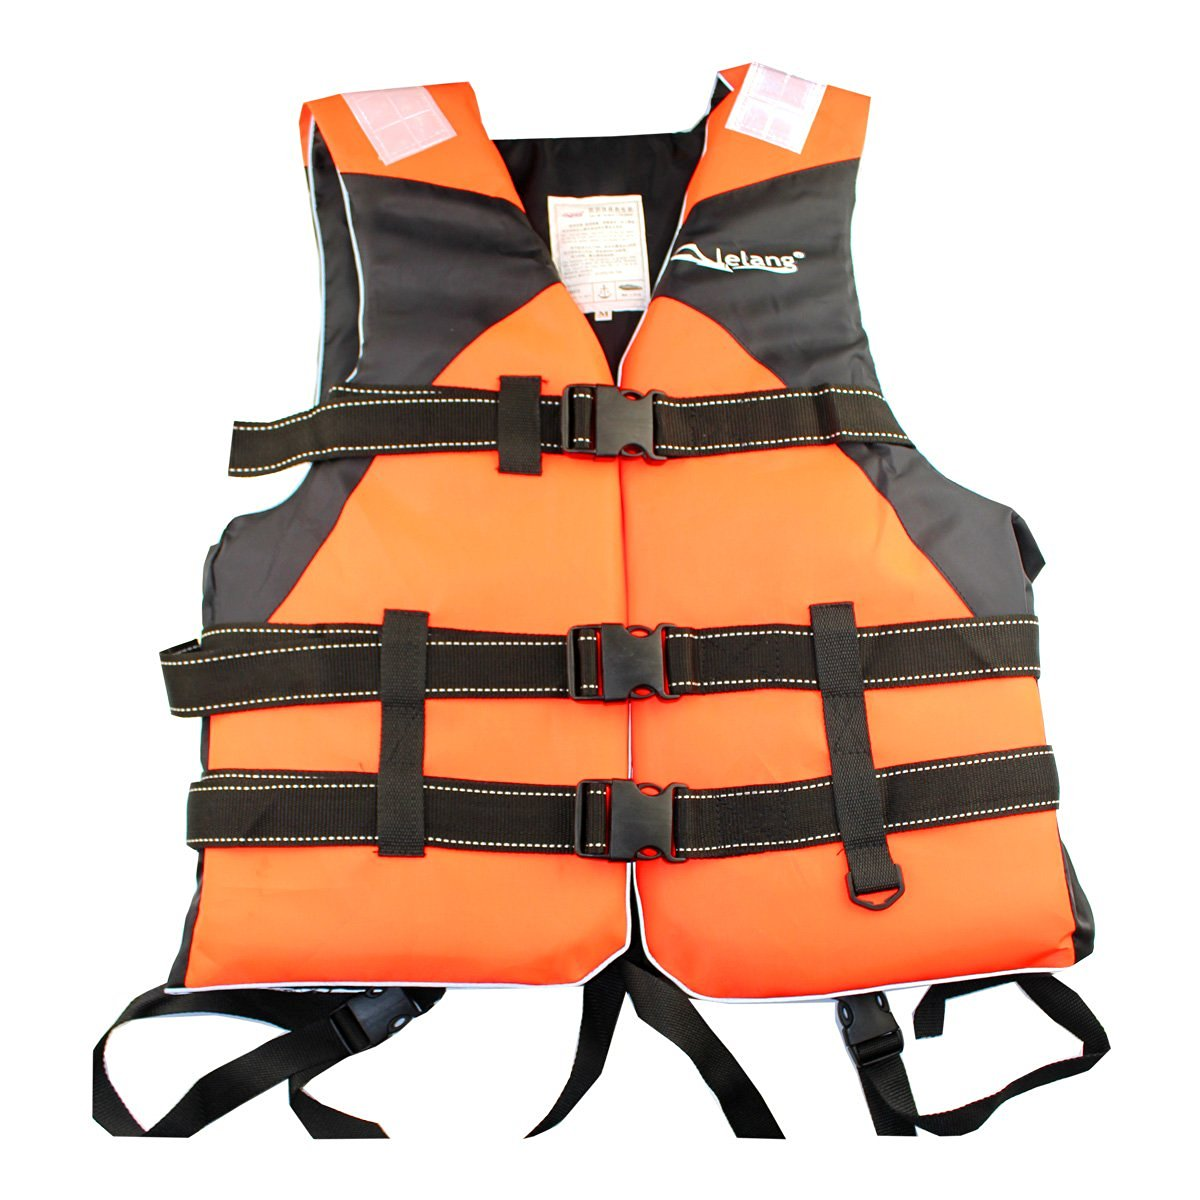 Adult life jackets drift snorkeling surfing wear vests vests take off with life jackets